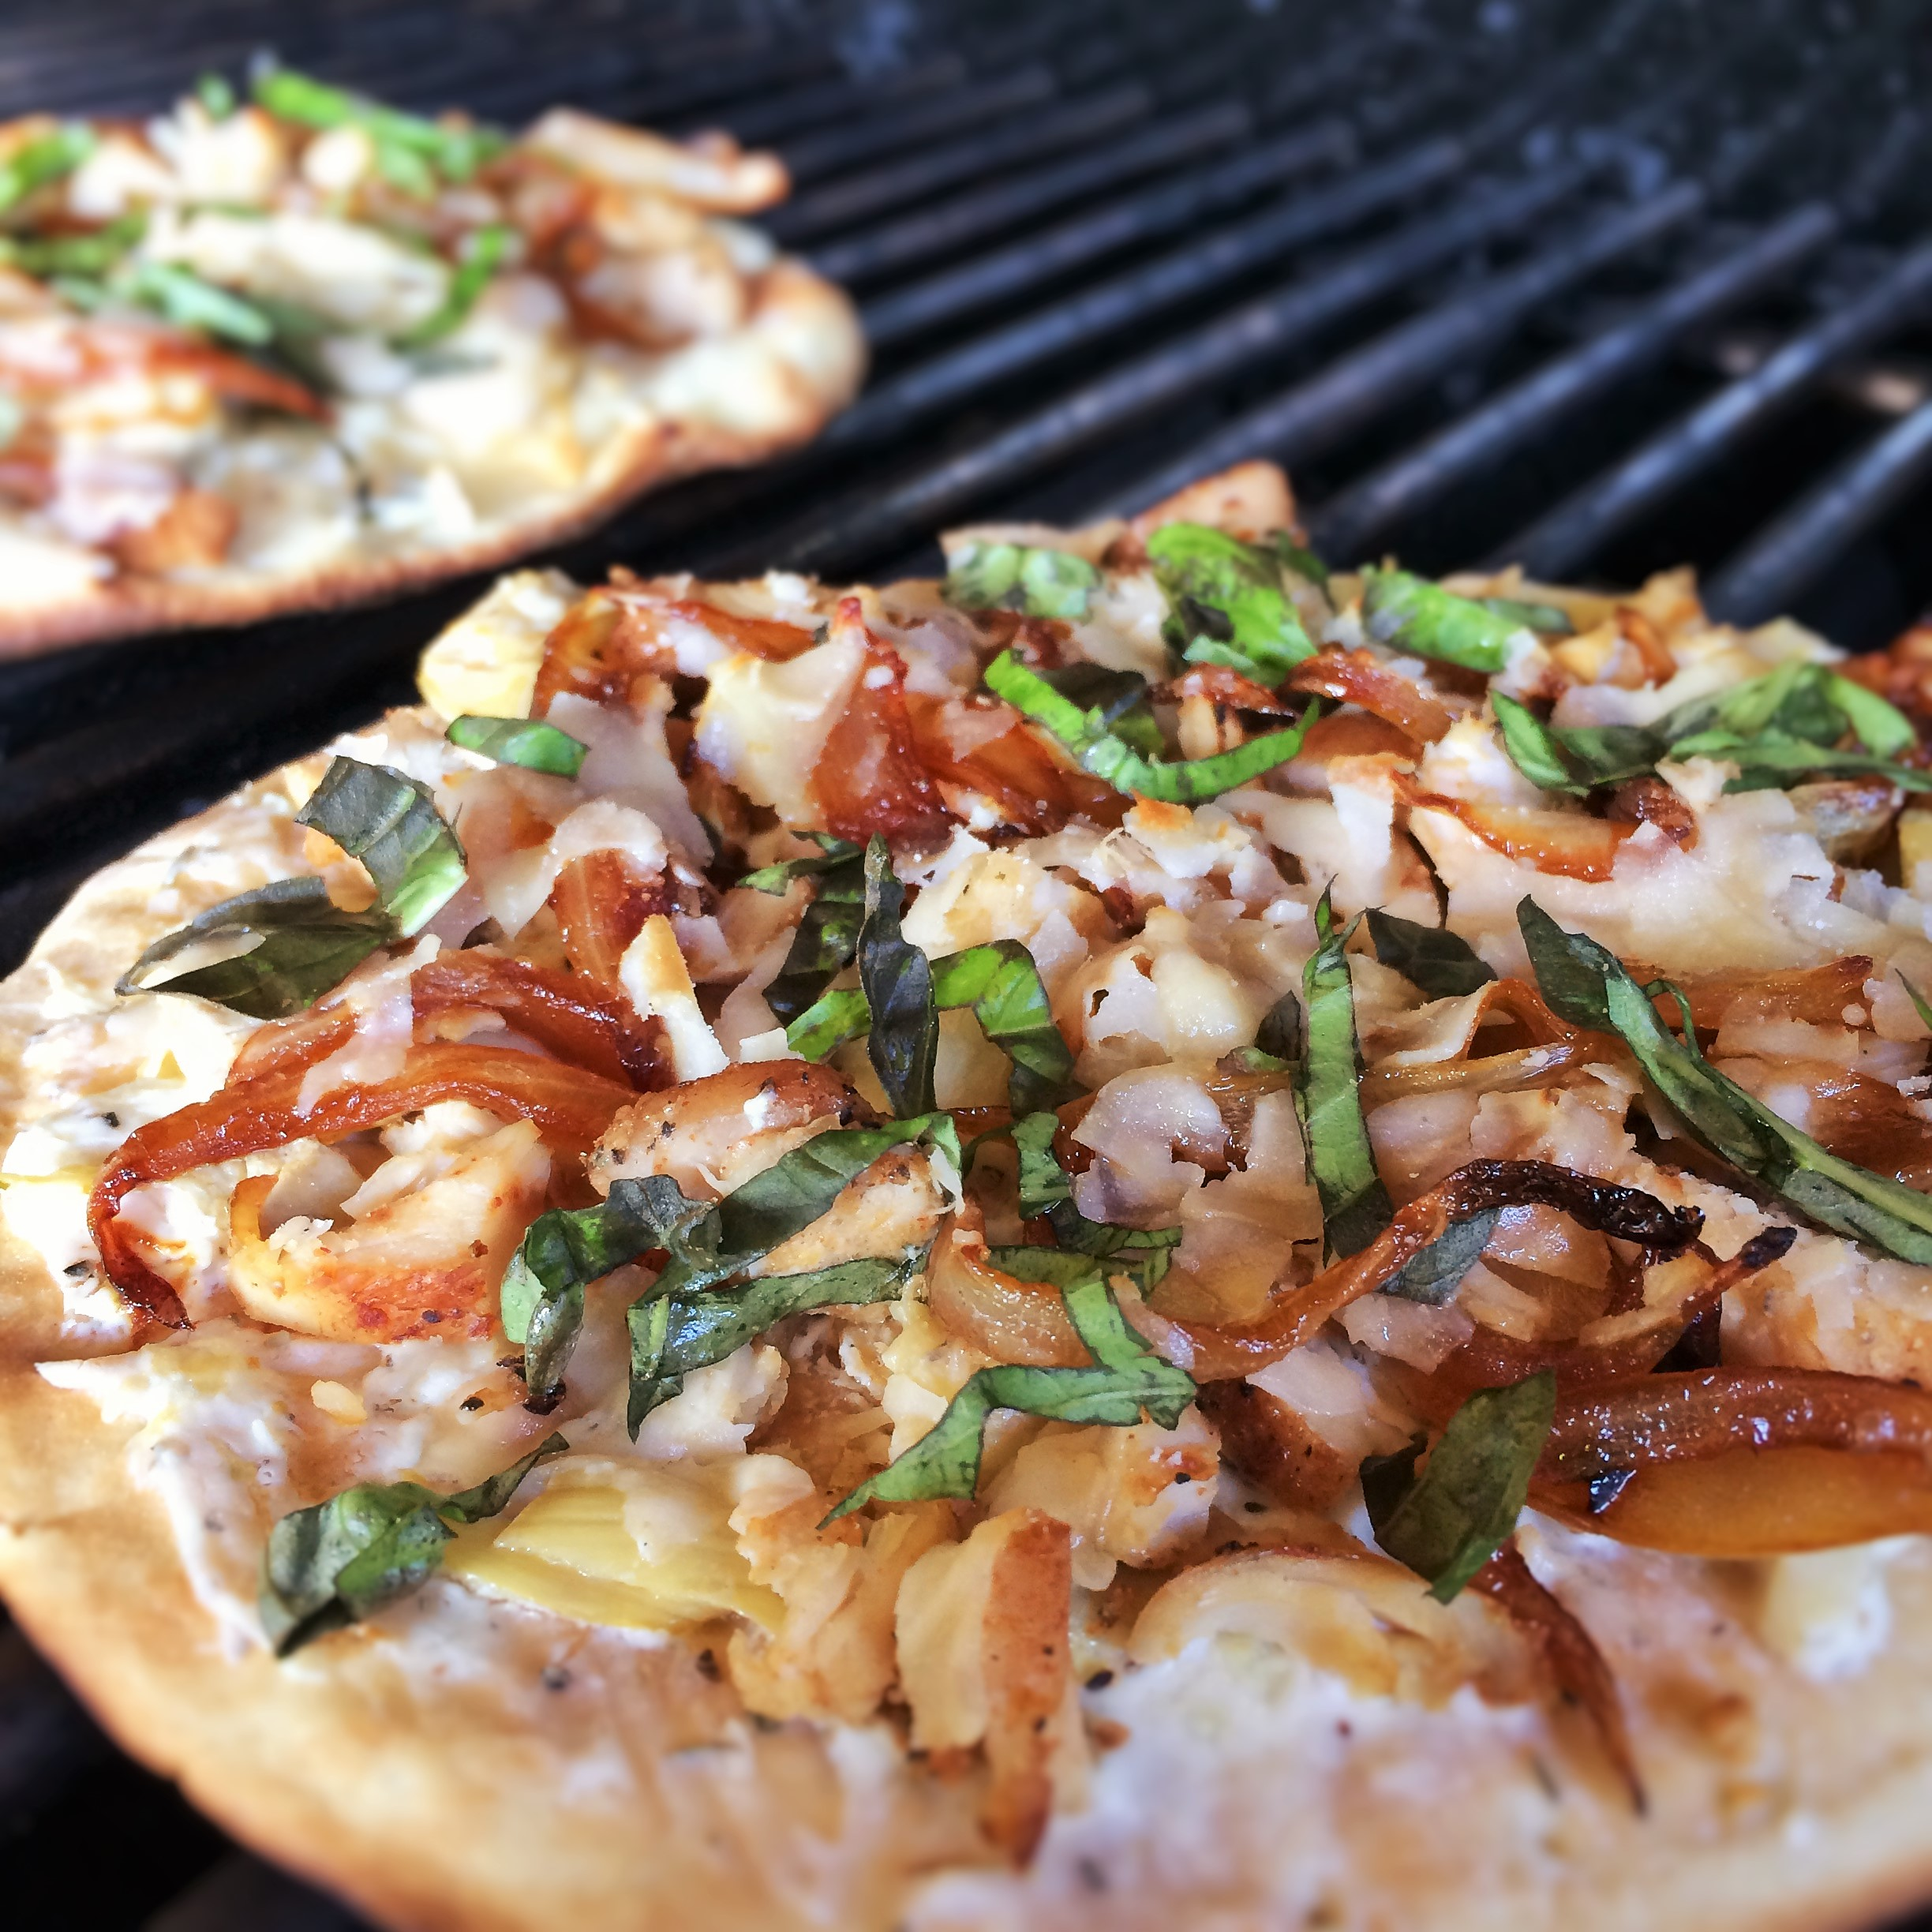 Piatto Mediterranean Kitchen: Grilled Chicken Artichoke Pizza With Herb-Cheese Spread